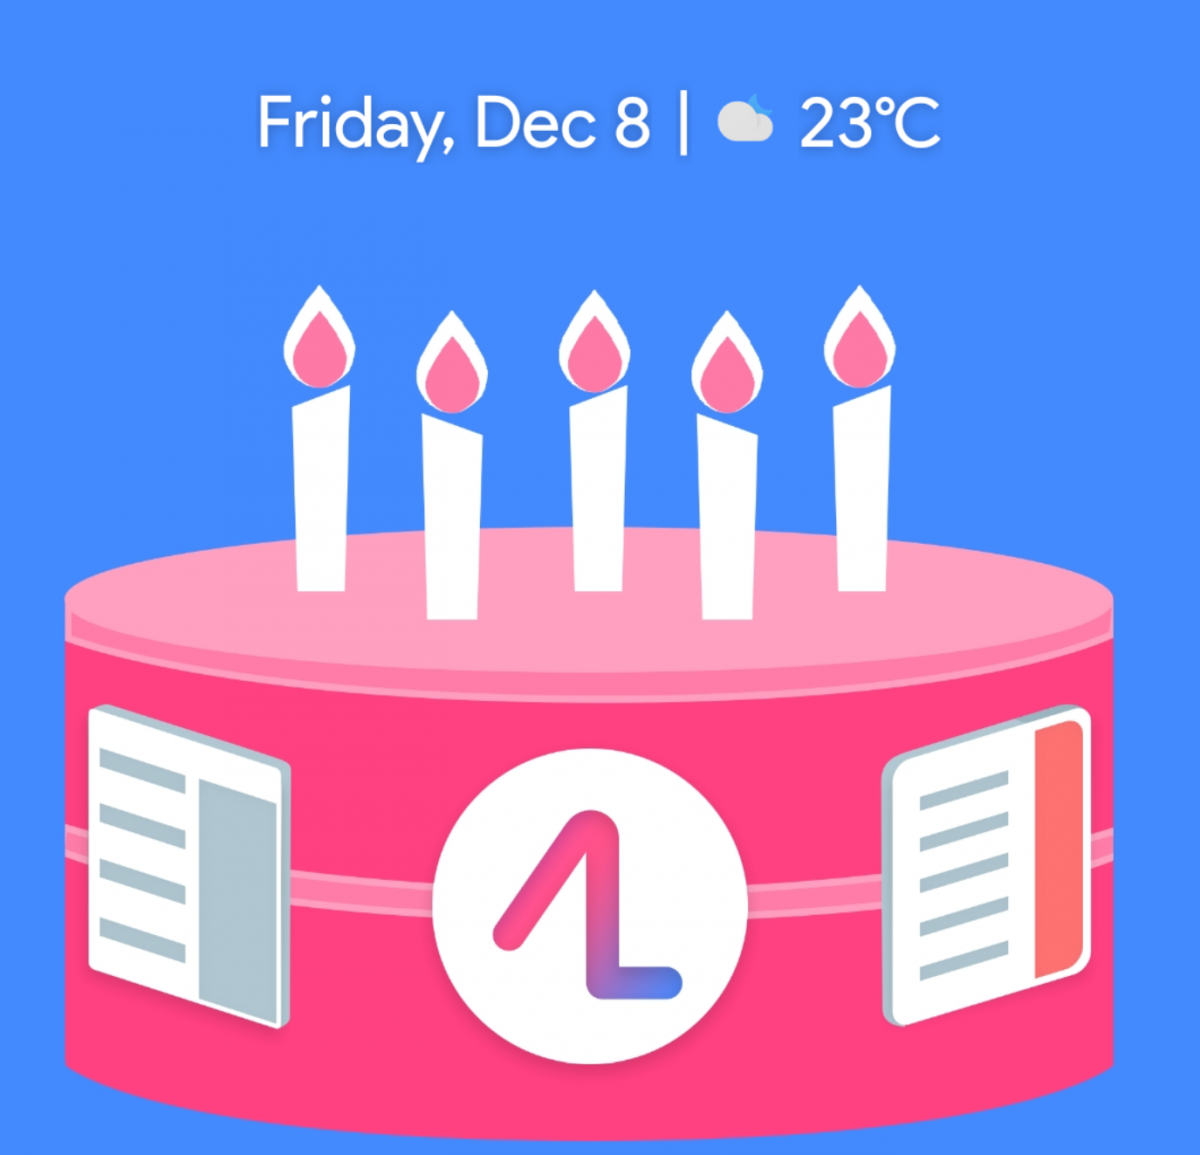 Action Launcher Updated to v32, Adds 200 More Icons to